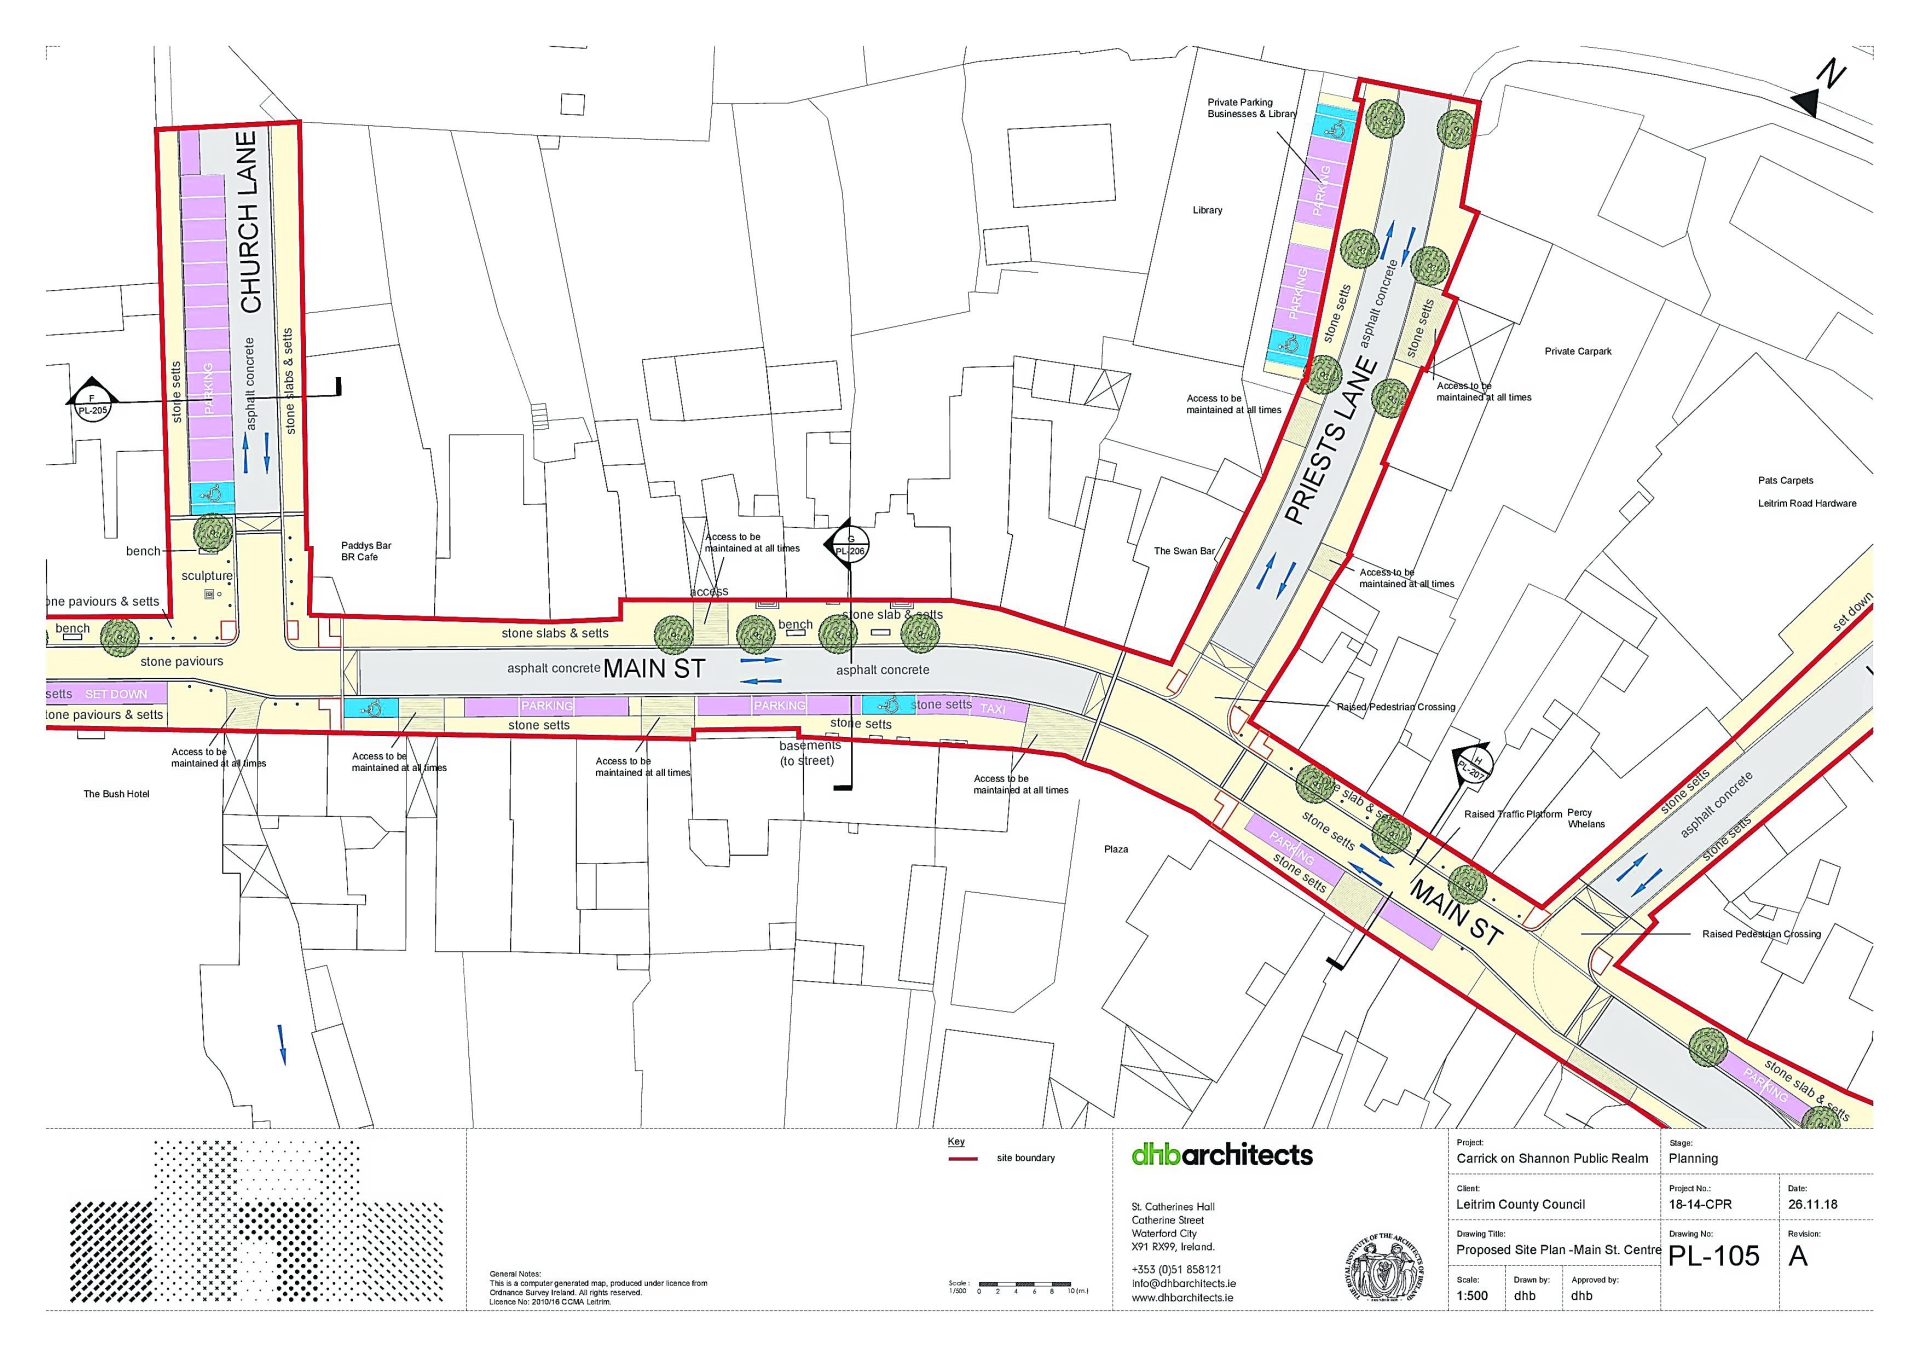 Plans for Carrick-on-Shannon Town Centre